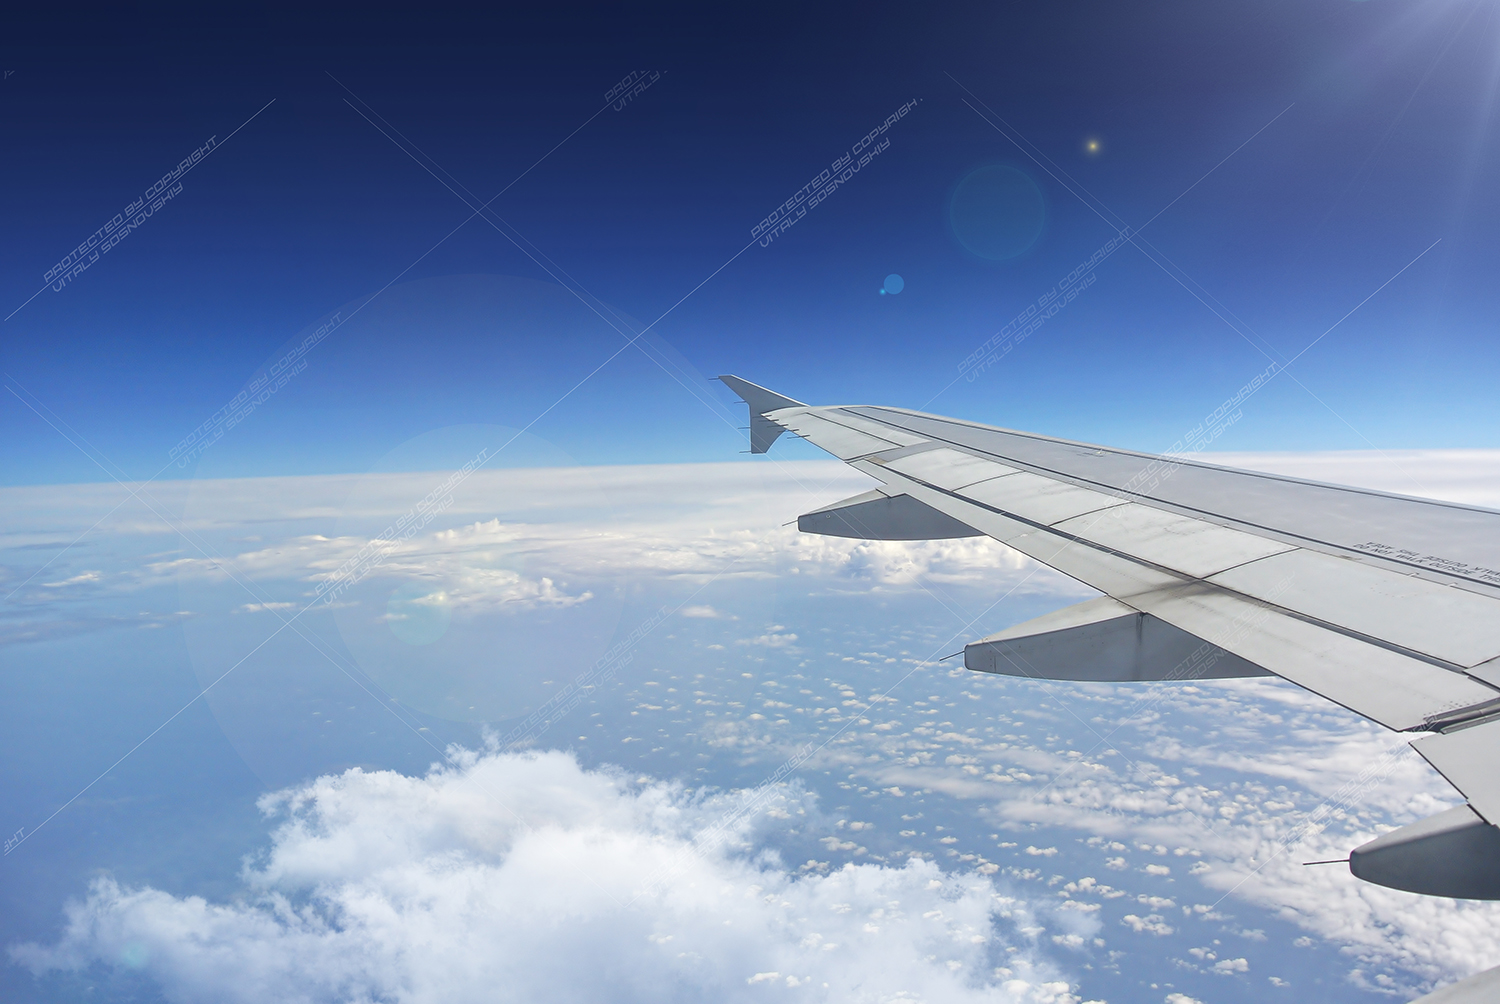 20 Photos clouds and wings of airplanes example image 2